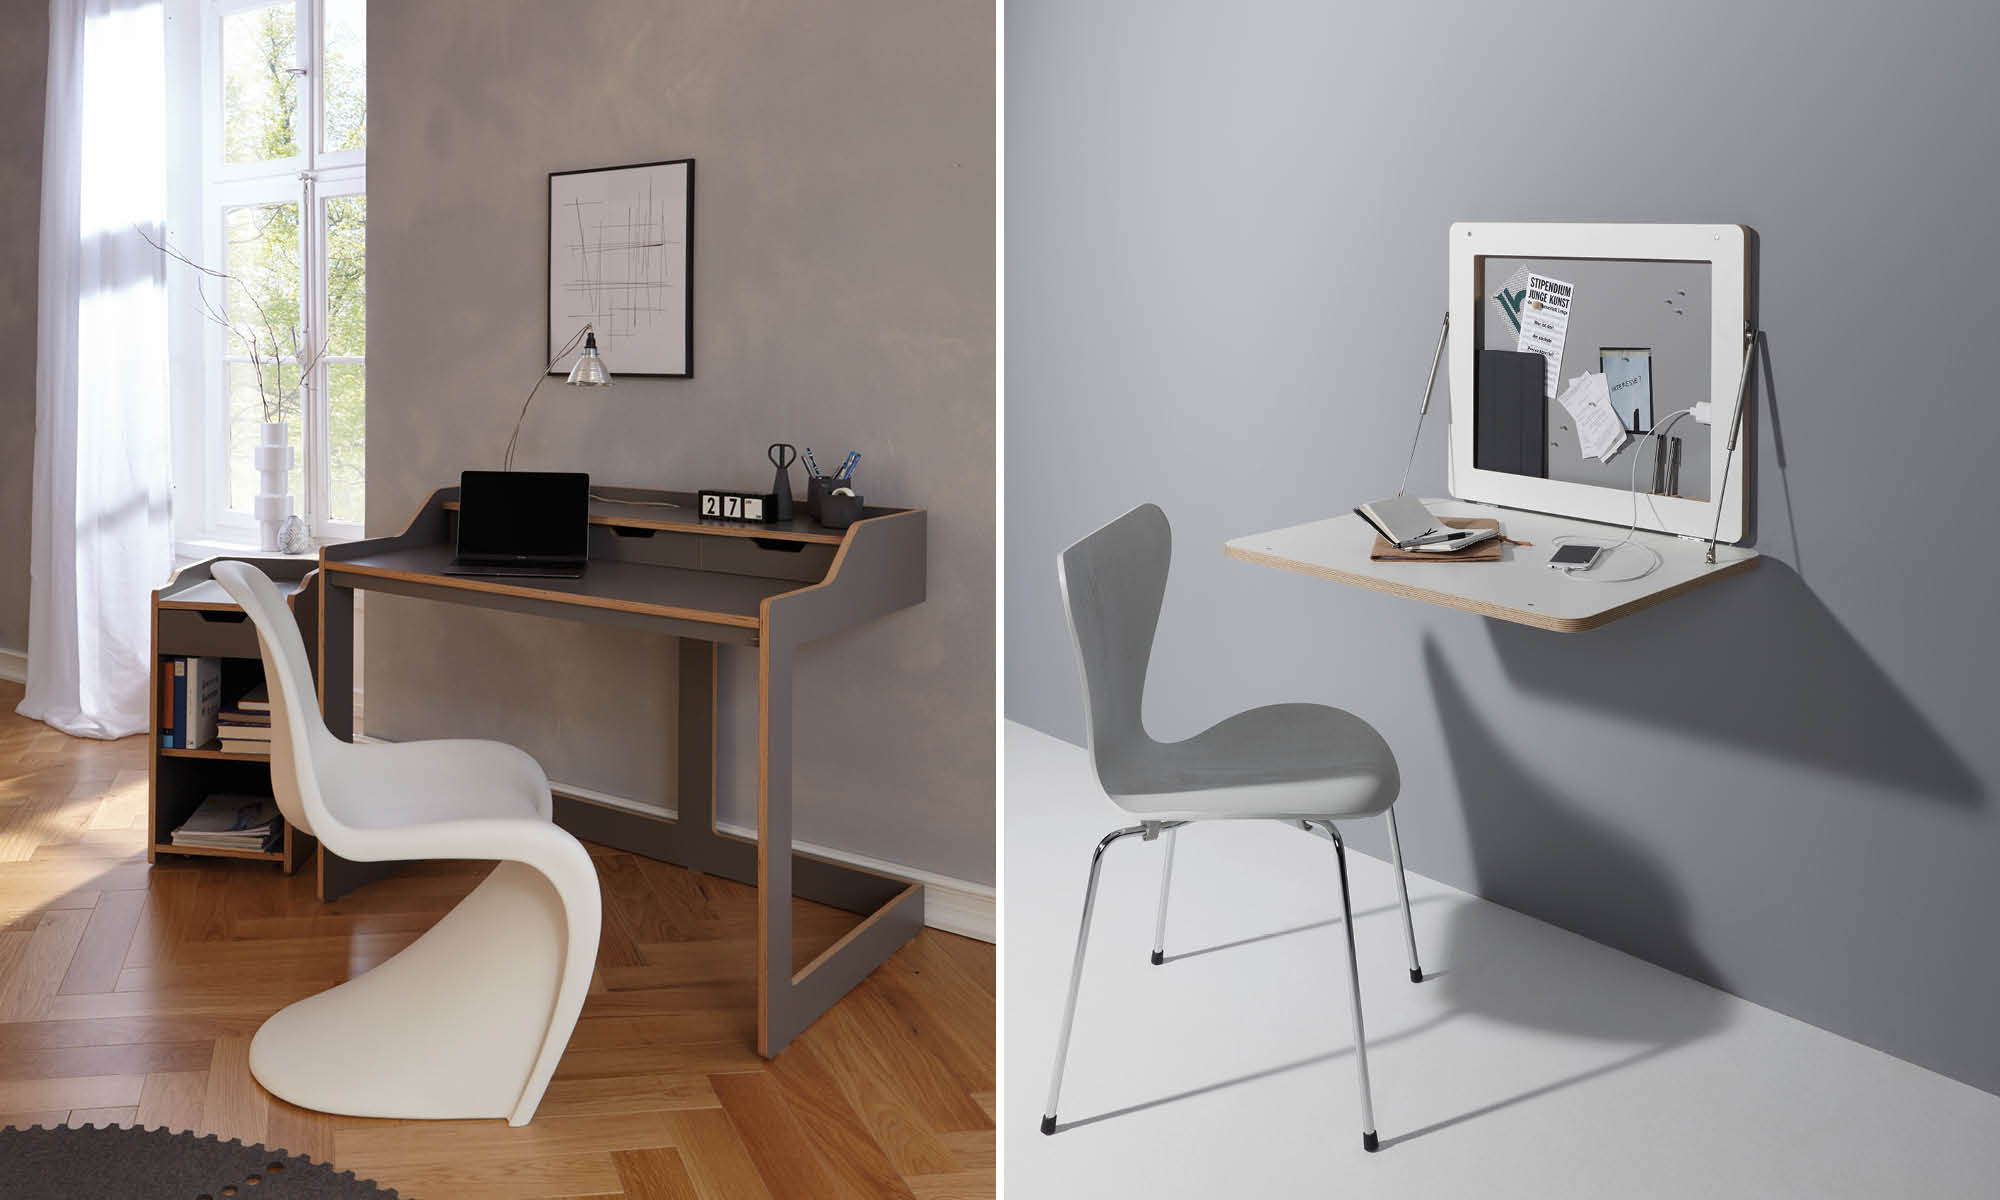 Multifunctional furniture for the home office